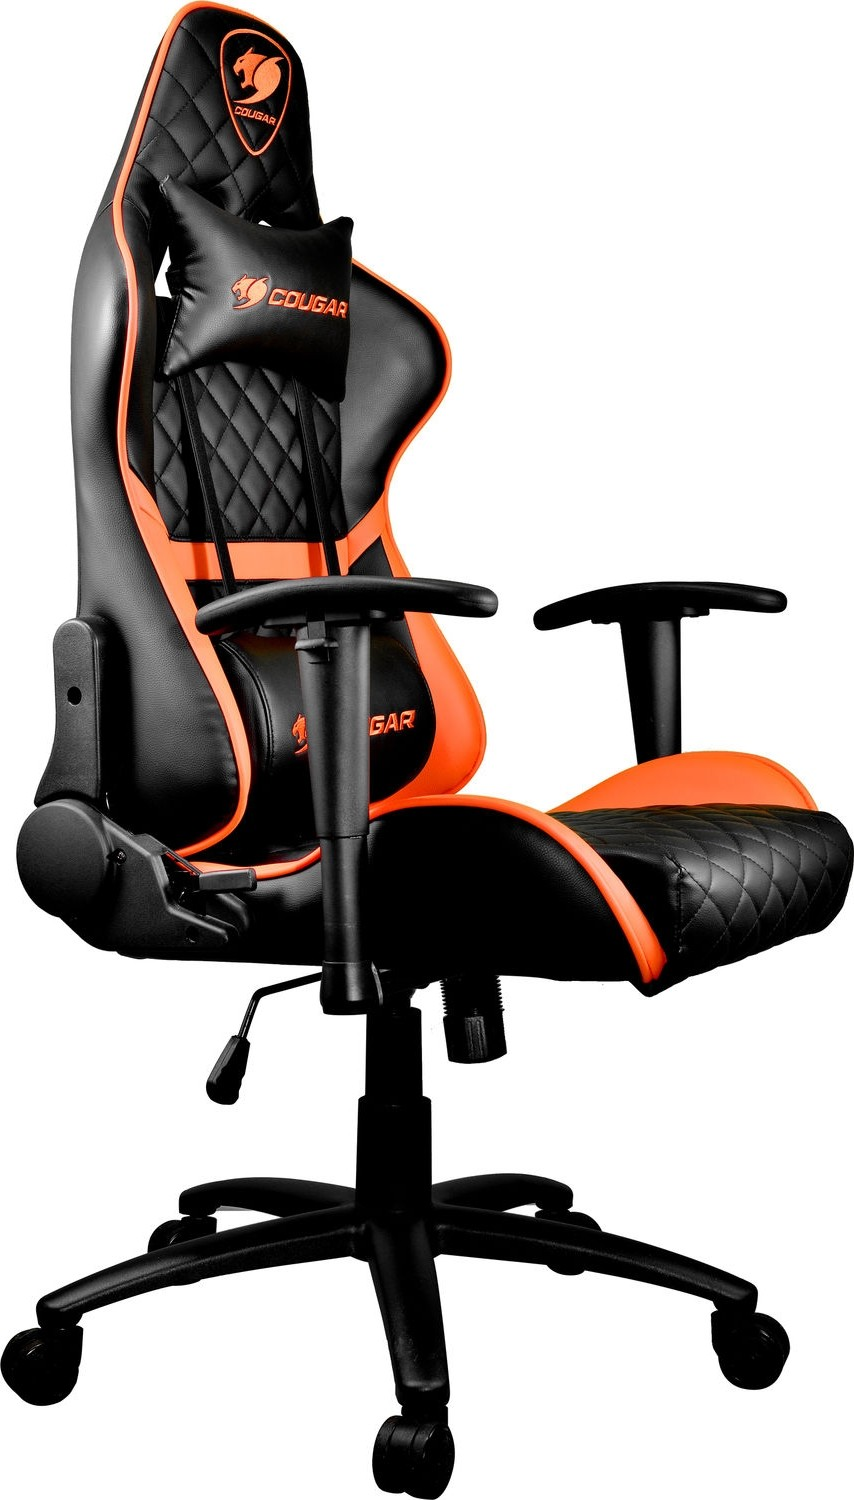 Surprising Cougar Armor One Gaming Chair 180O Reclining And Height Adjustment Black And Orange Cgr Armor One Blk Org Machost Co Dining Chair Design Ideas Machostcouk